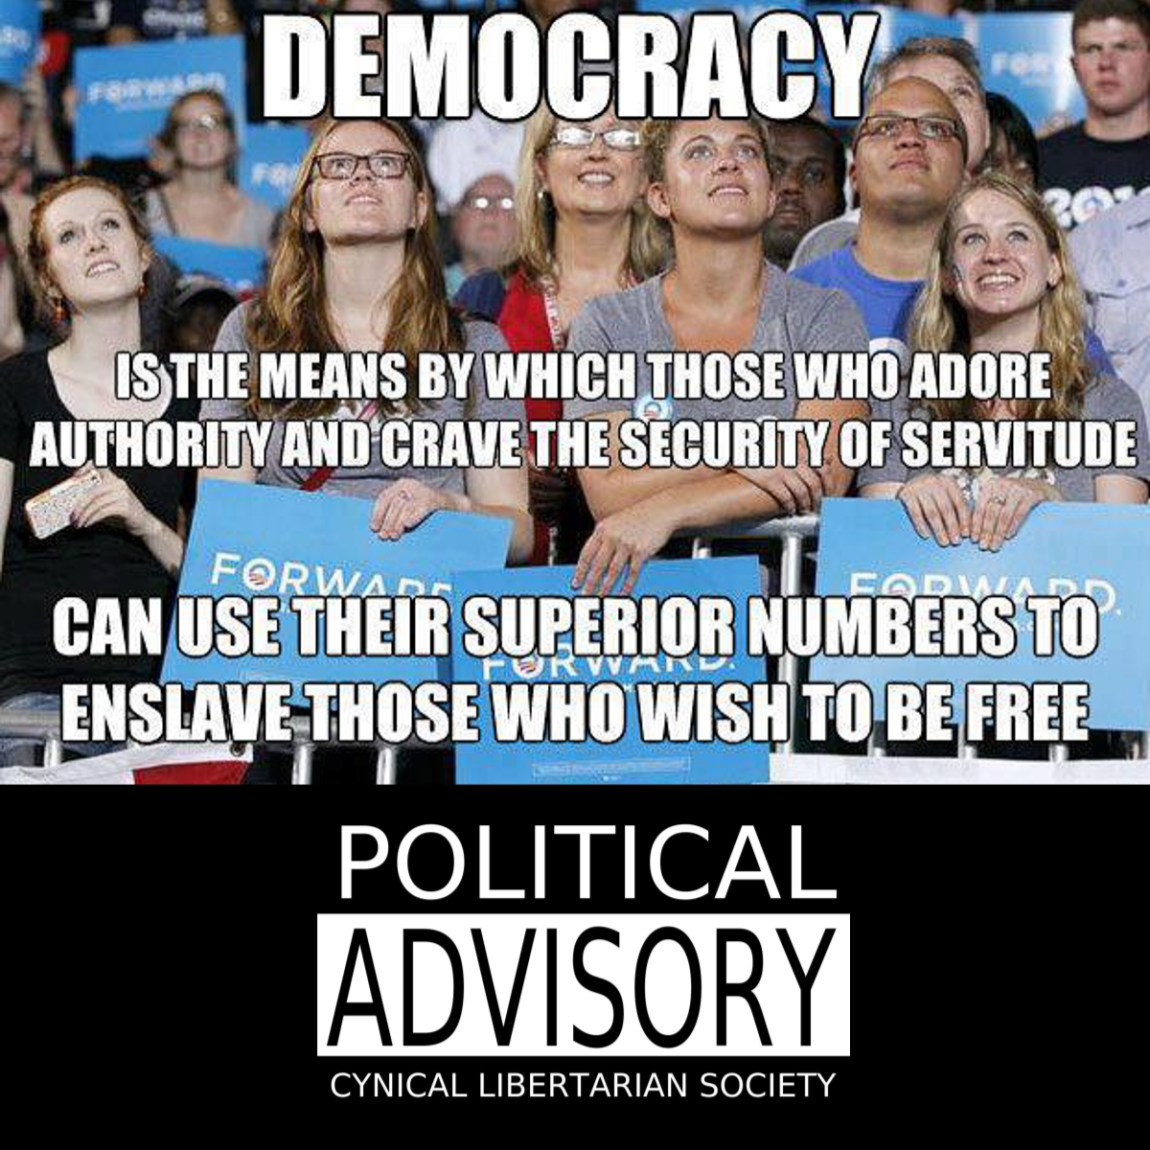 democracy is the stupid enslaving others